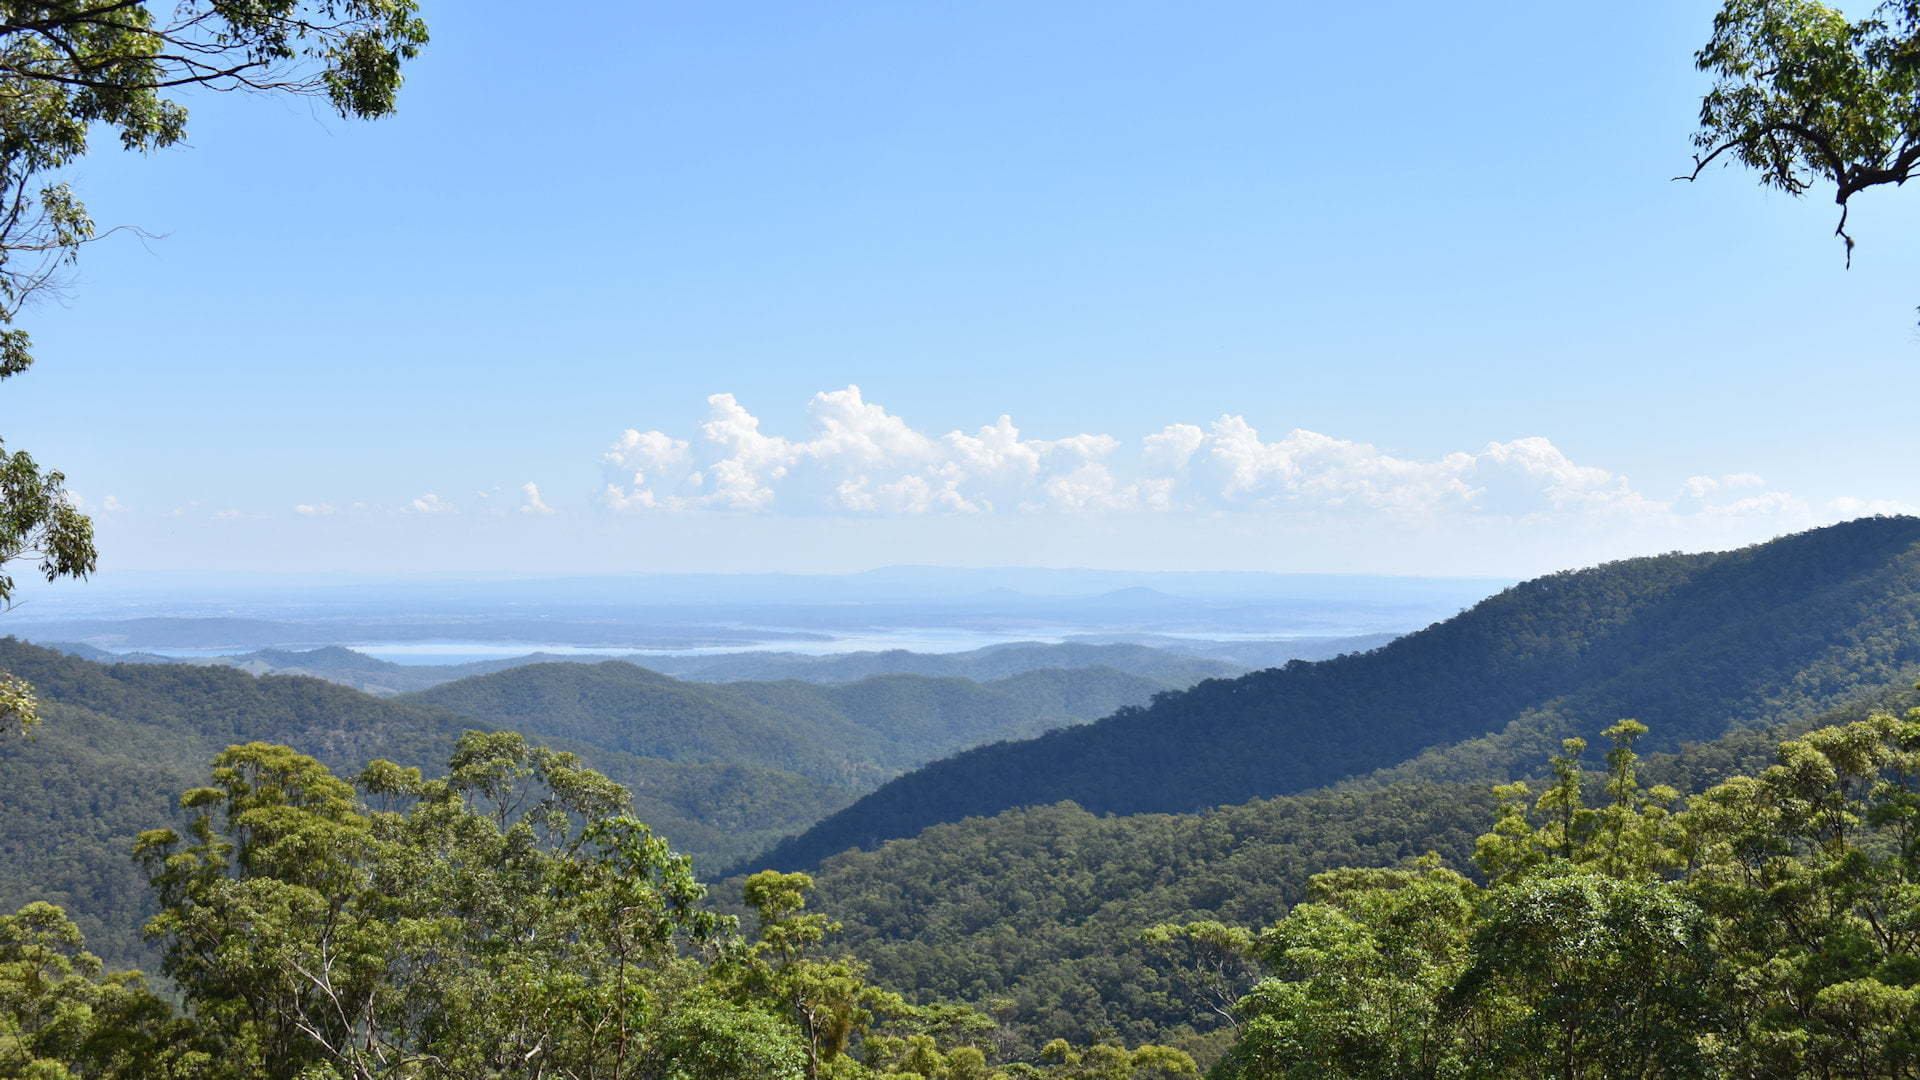 Rolling hills with Lake Wivenhoe in the background, seen from Wivenhoe Outlook on Mount Glorious Road